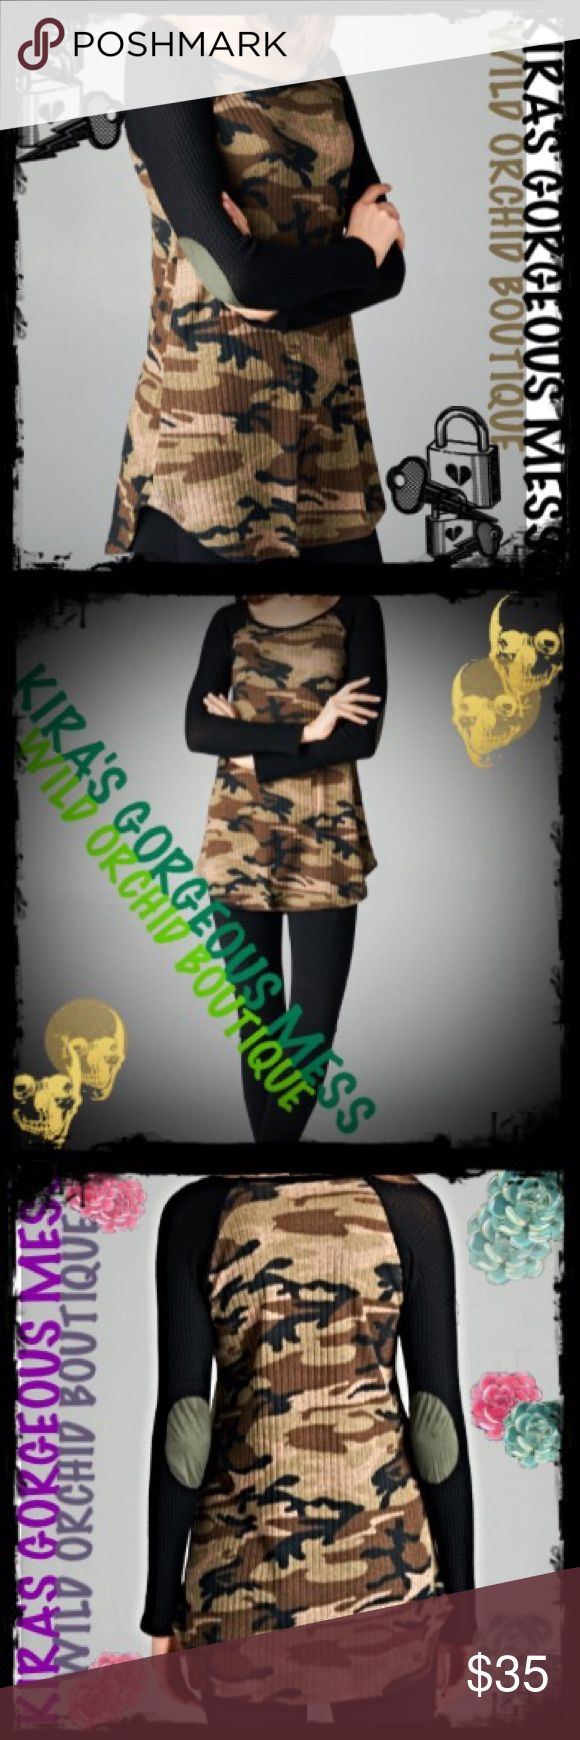 BNWT LONG SLEEVE TWO TONE CAMOUFLAGE SHIRT BNWT LONG SLEEVE TWO TONE CAMOUFLAGE SHIRT; CAMO IS IN TIME TO DROP IT LIKE ITS HOT LADIES!!!! Wild Orchid Boutique Tops Tees - Long Sleeve